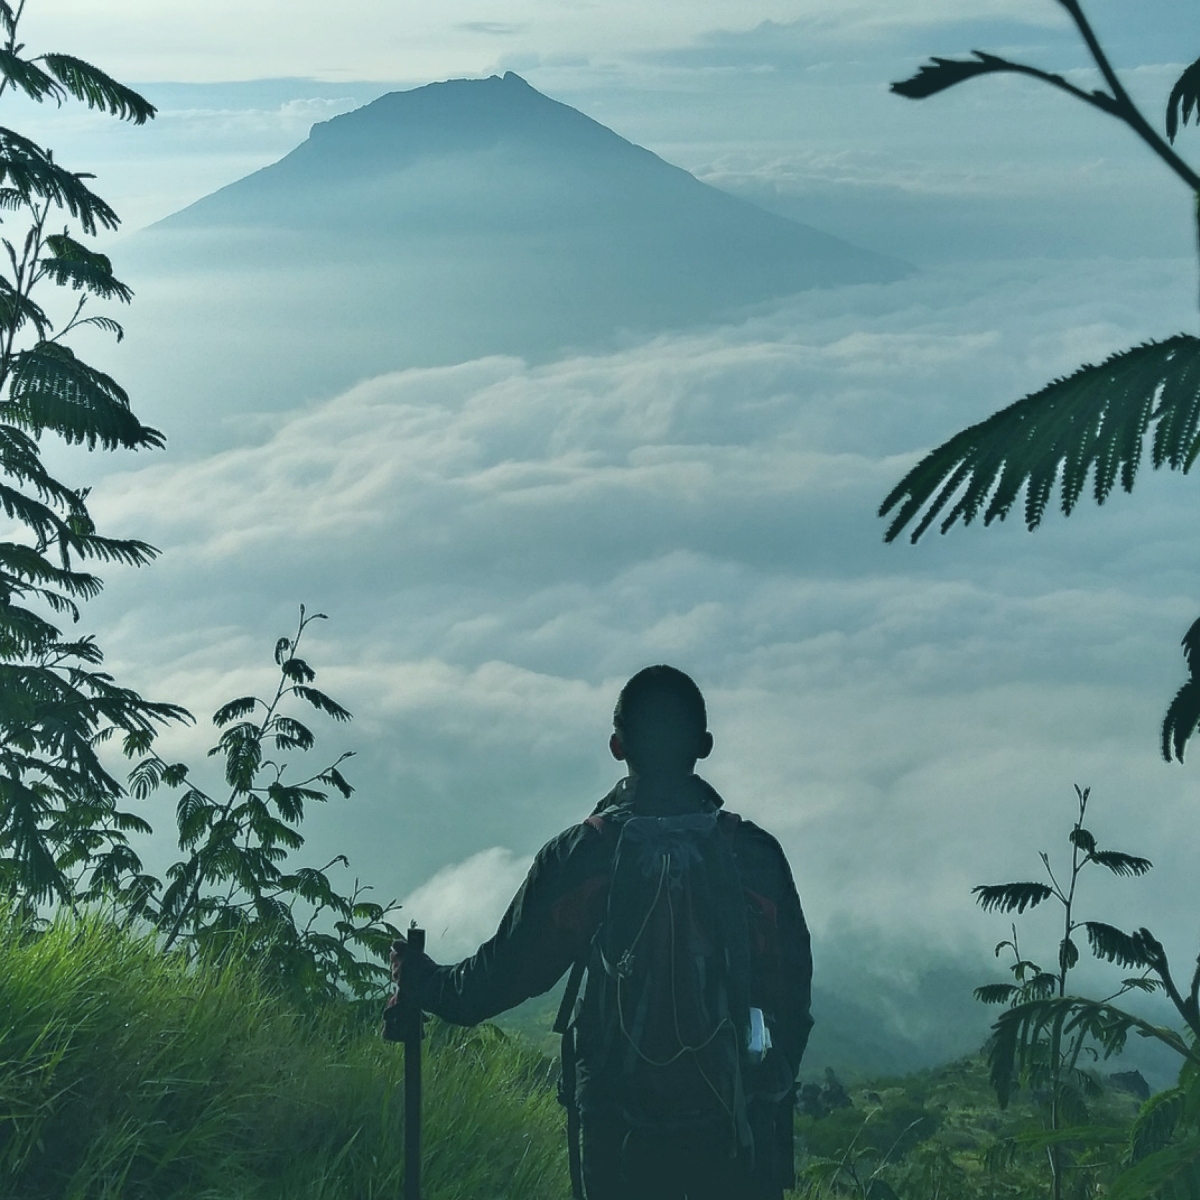 Overcoming the challenges of solo travel.